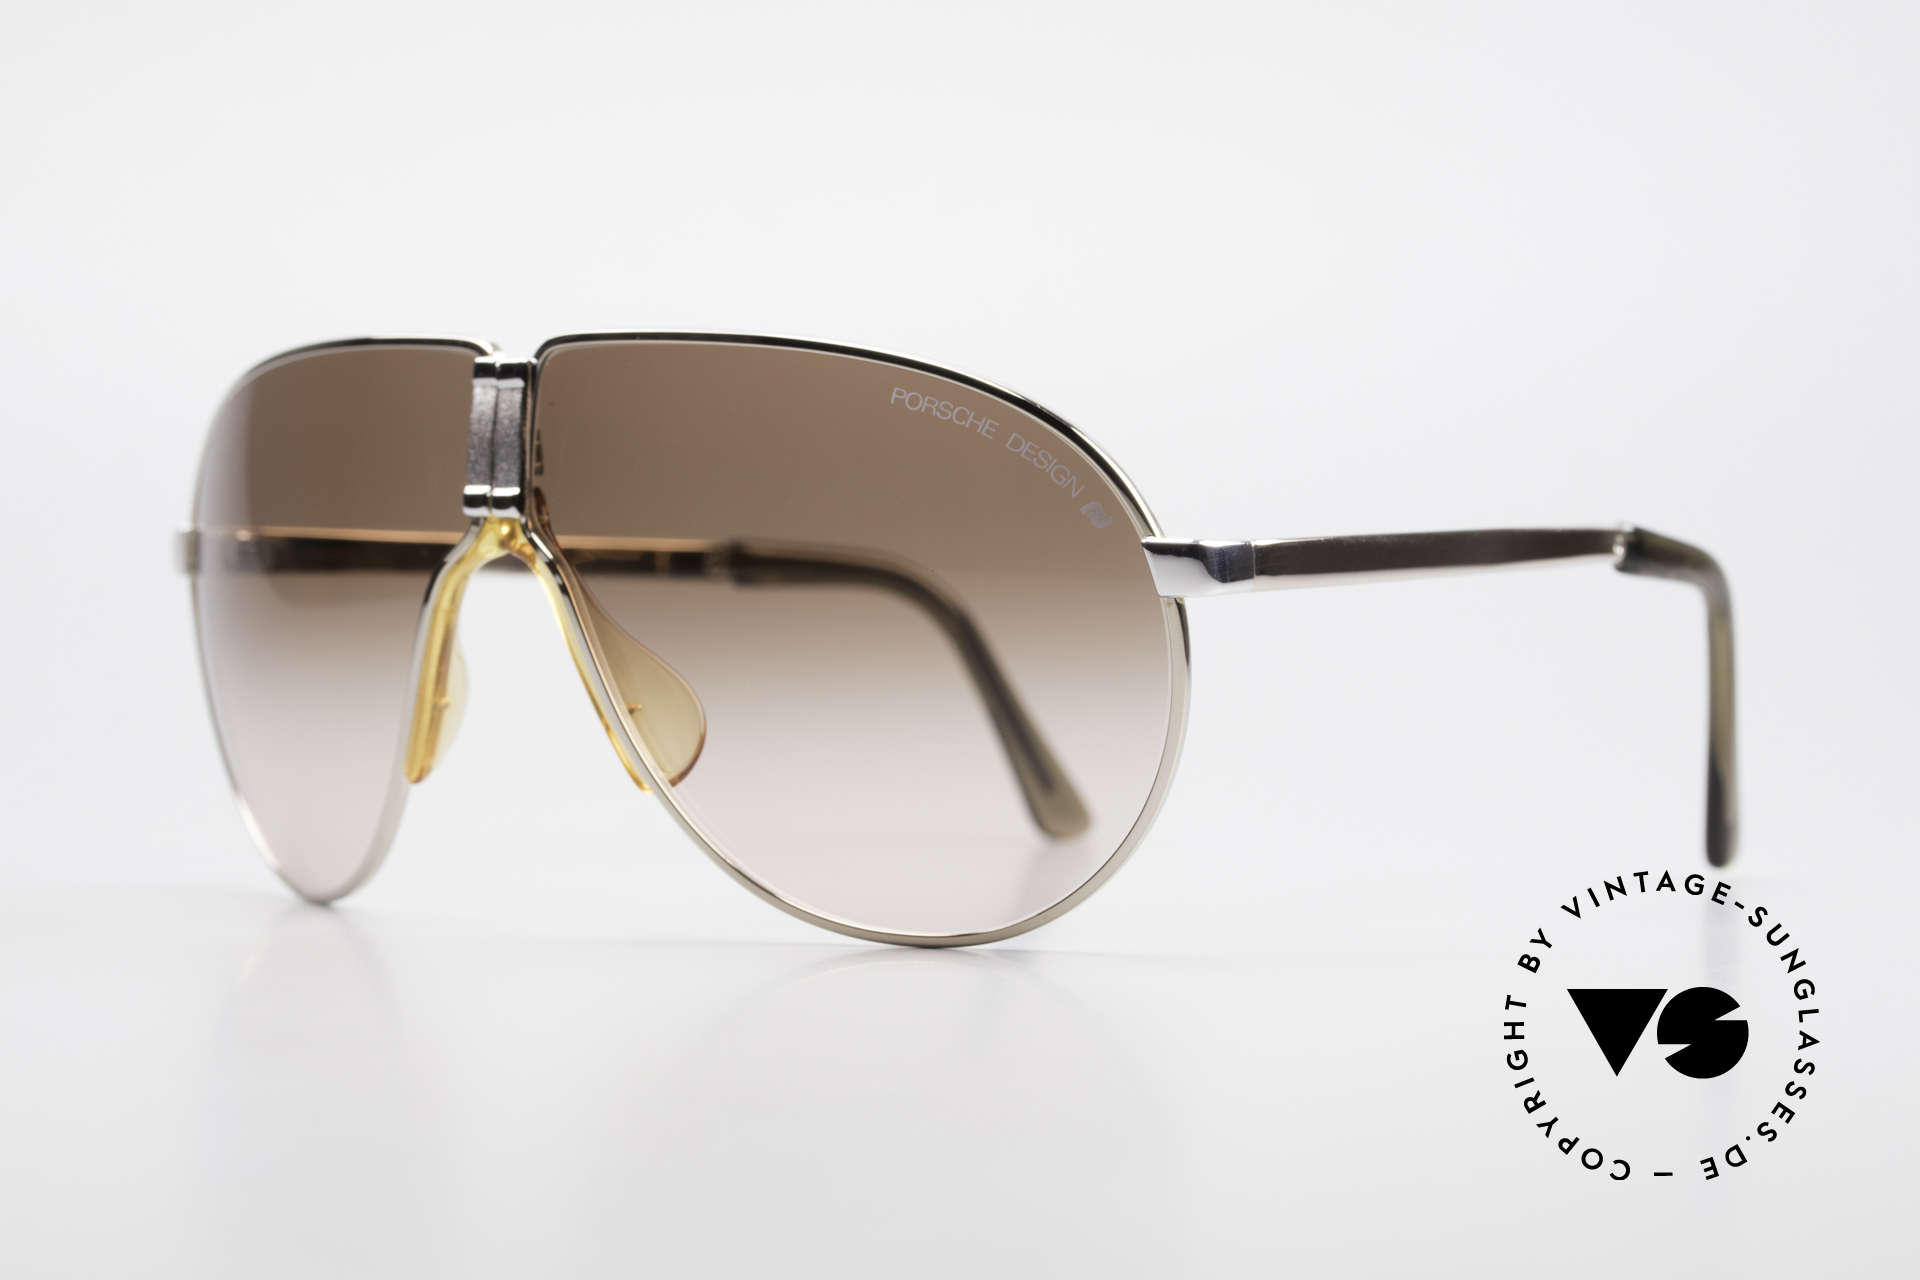 Porsche 5622 Rare 80's Folding Sunglasses, bicolor = gold AND silver = a real synonym of 80's fashion, Made for Men